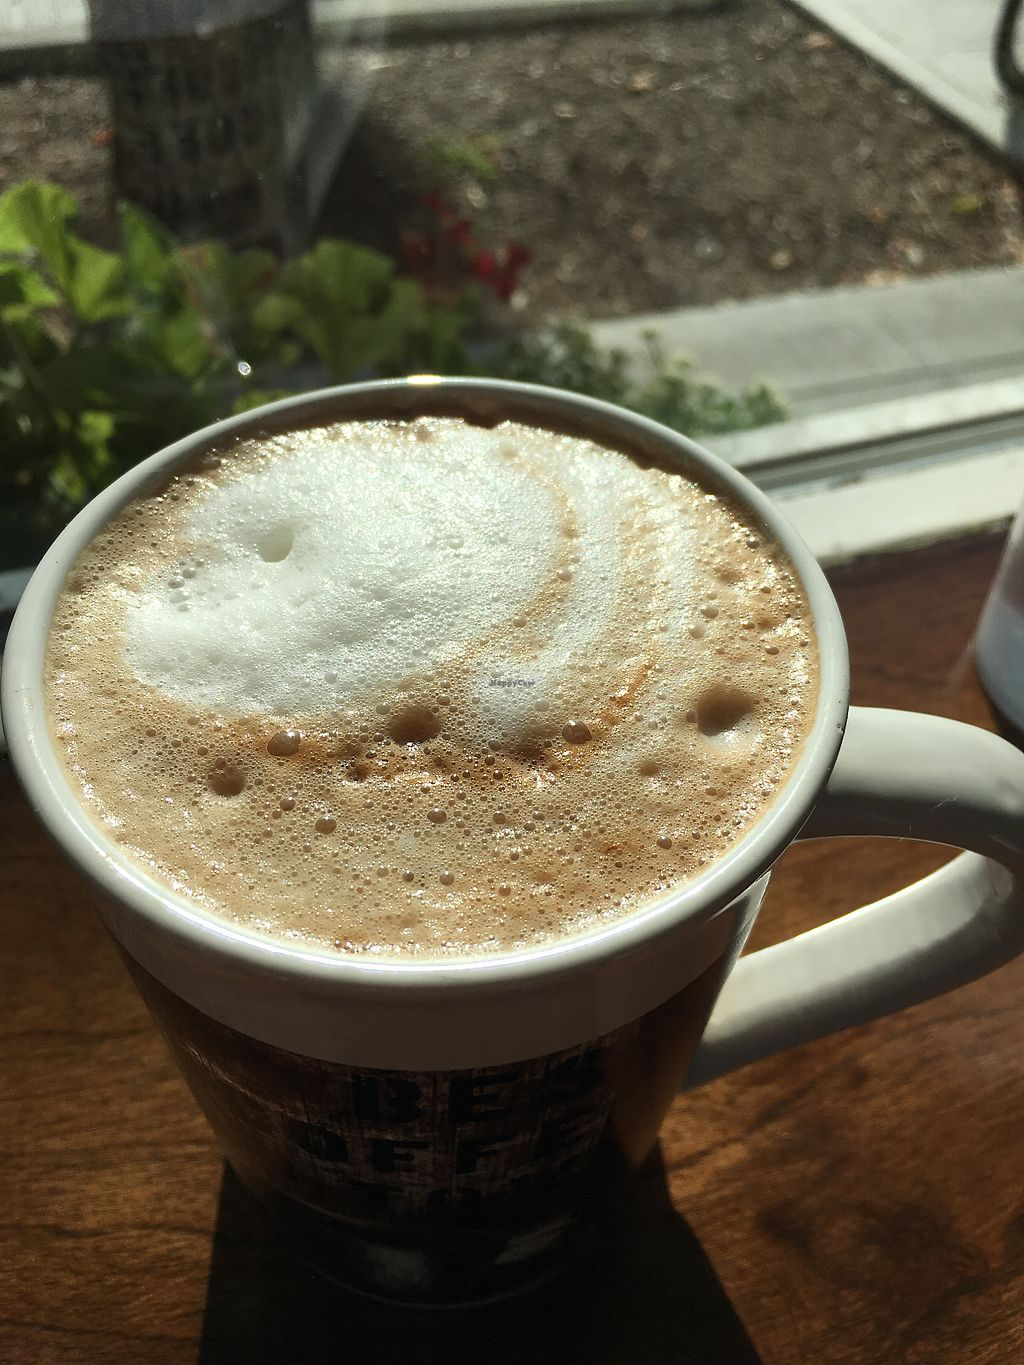 """Photo of CLOSED: 701 Coffee  by <a href=""""/members/profile/Veg4Jay"""">Veg4Jay</a> <br/>Hazelnut Mocha w/ Almond Milk <br/> August 19, 2017  - <a href='/contact/abuse/image/66227/294396'>Report</a>"""